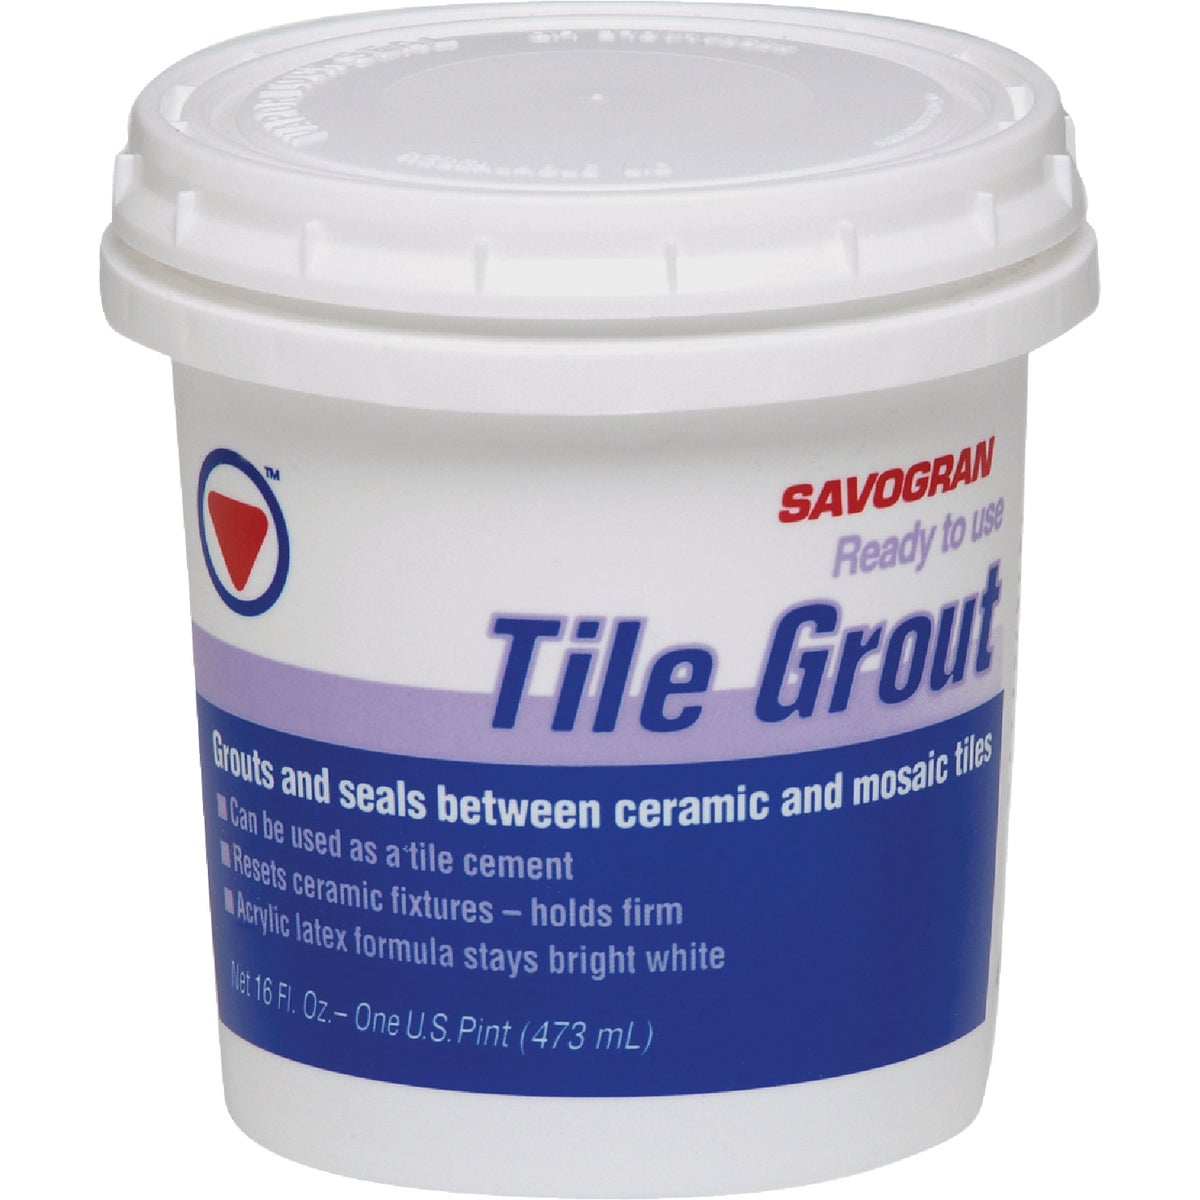 PINT PREMIXED TILE GROUT - 12861 by Savogran Company